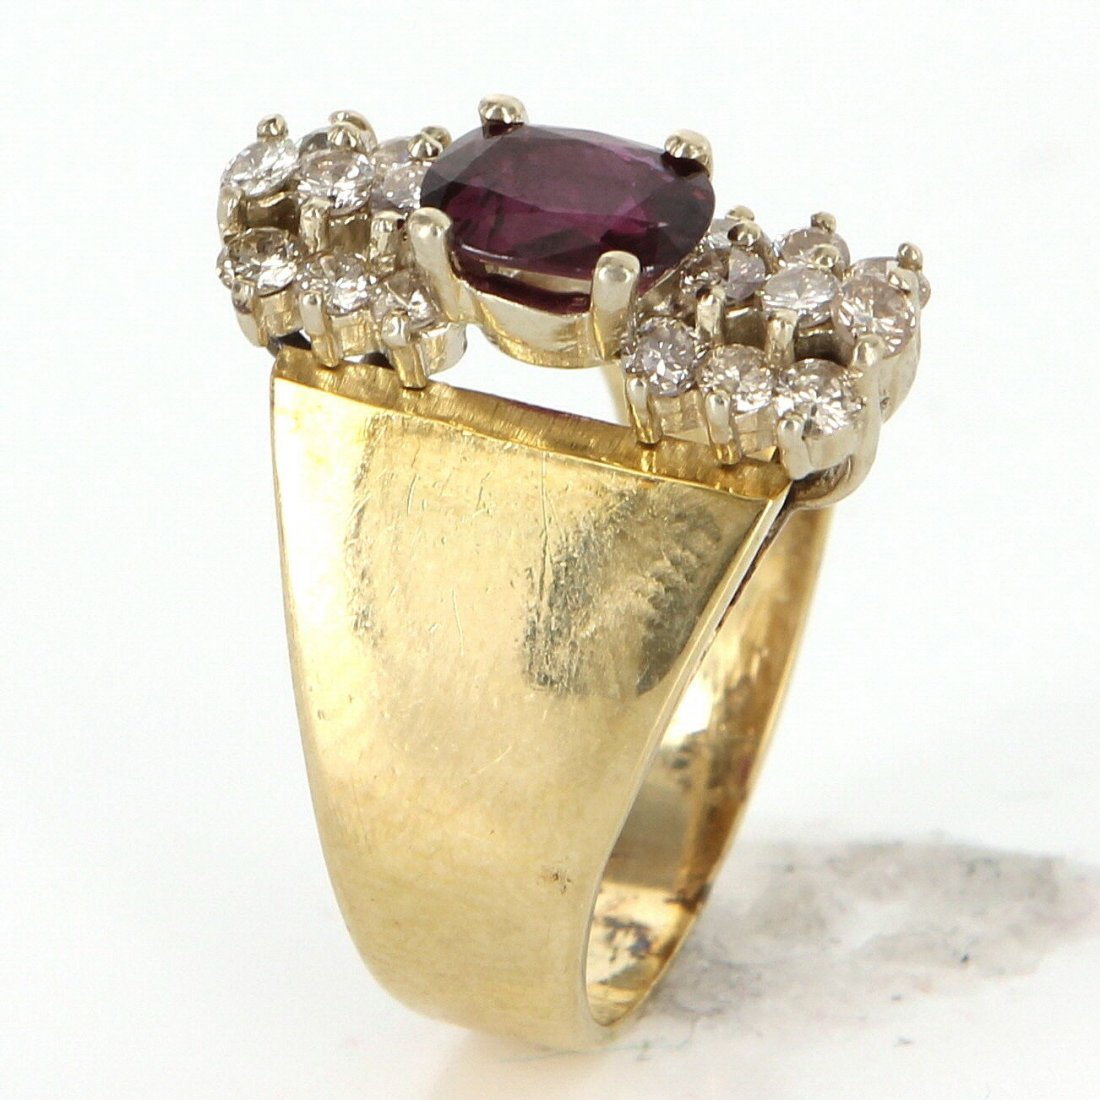 Vintage 14 Karat Yellow Gold Diamond Ruby Cocktail Ring - 5